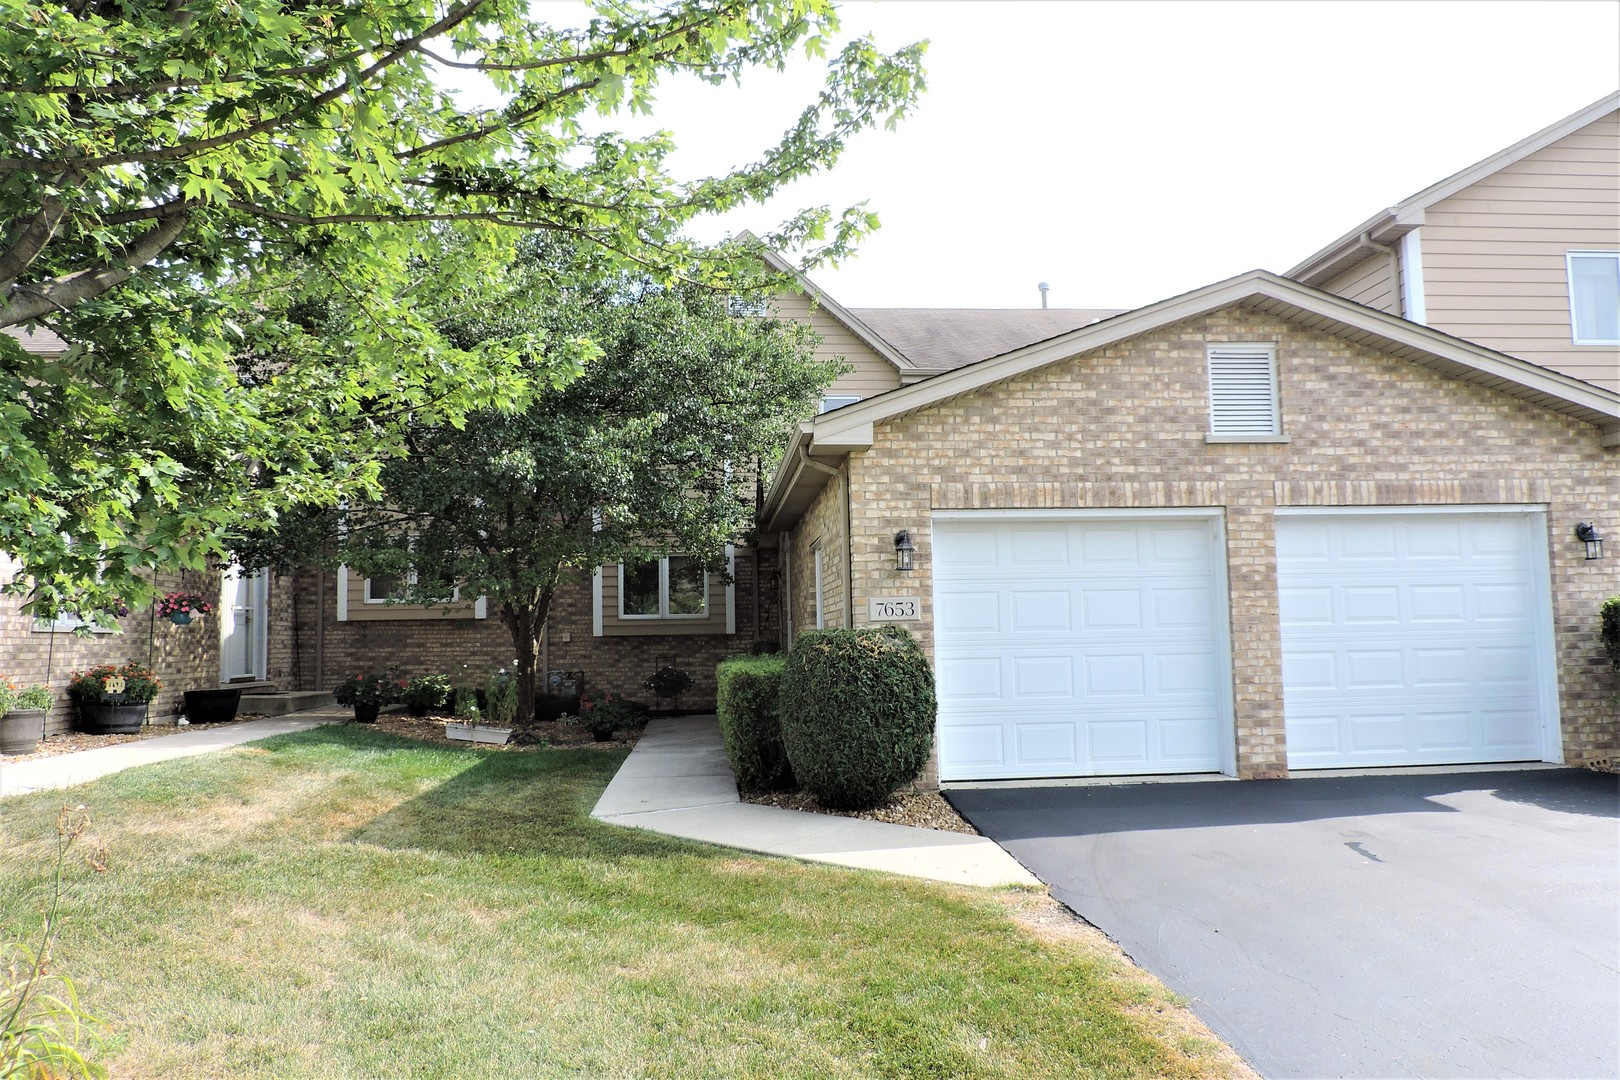 7653 Richardson Lane, one of homes for sale in Tinley Park